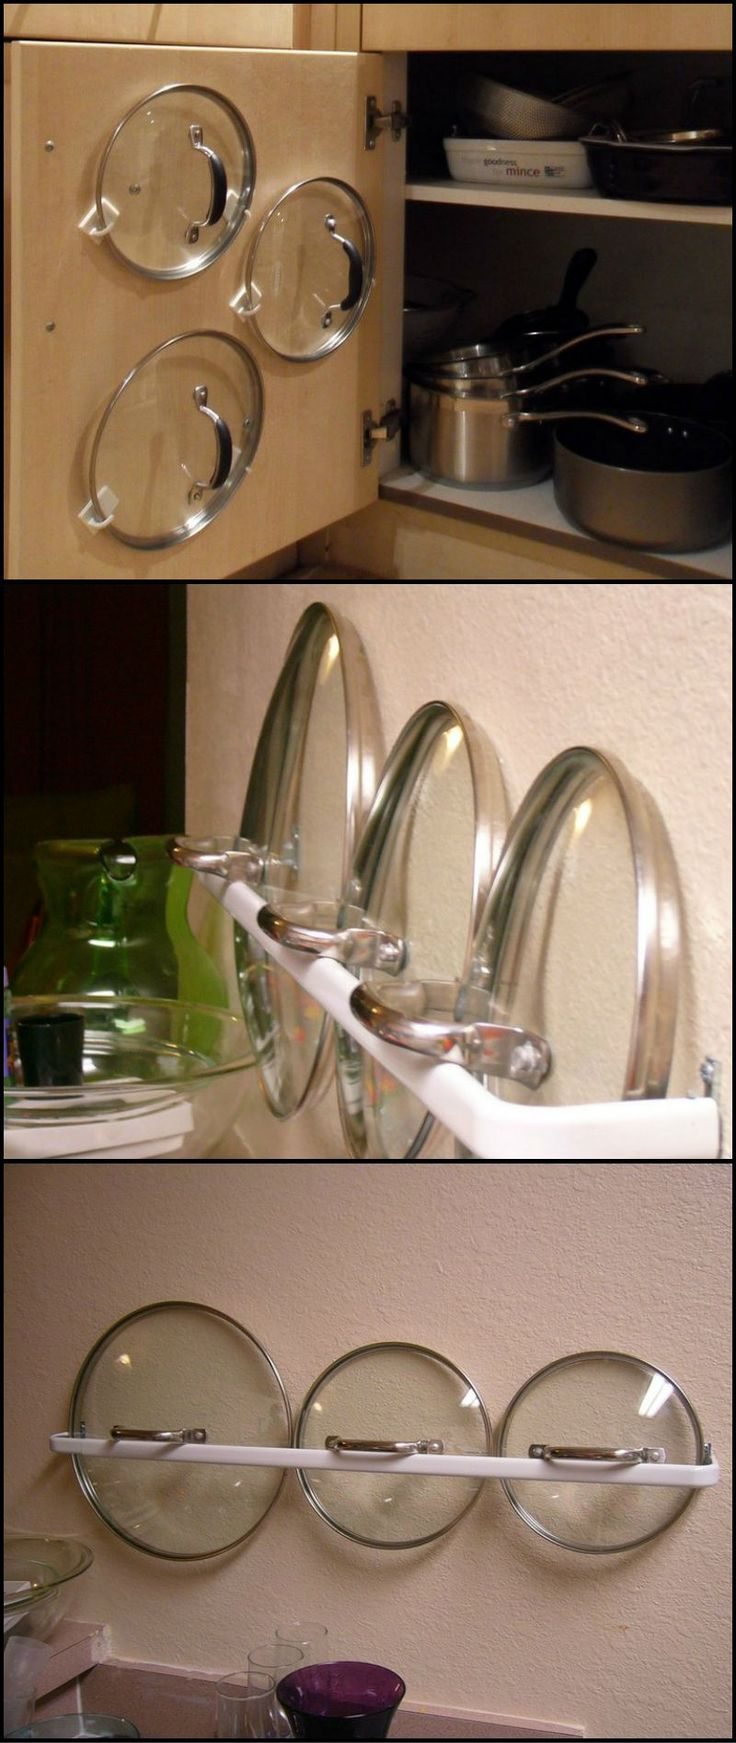 How To Make Your Own Pot Lid Organizer http://theownerbuildernetwork.co/3vnc Don't you just hate it when you can't find the right lid for a pot? Whether it's because you don't have a proper storage solution for pot lids, or because your kitchen is just disorganized, here are a couple of simple, inexpensive solutions! More